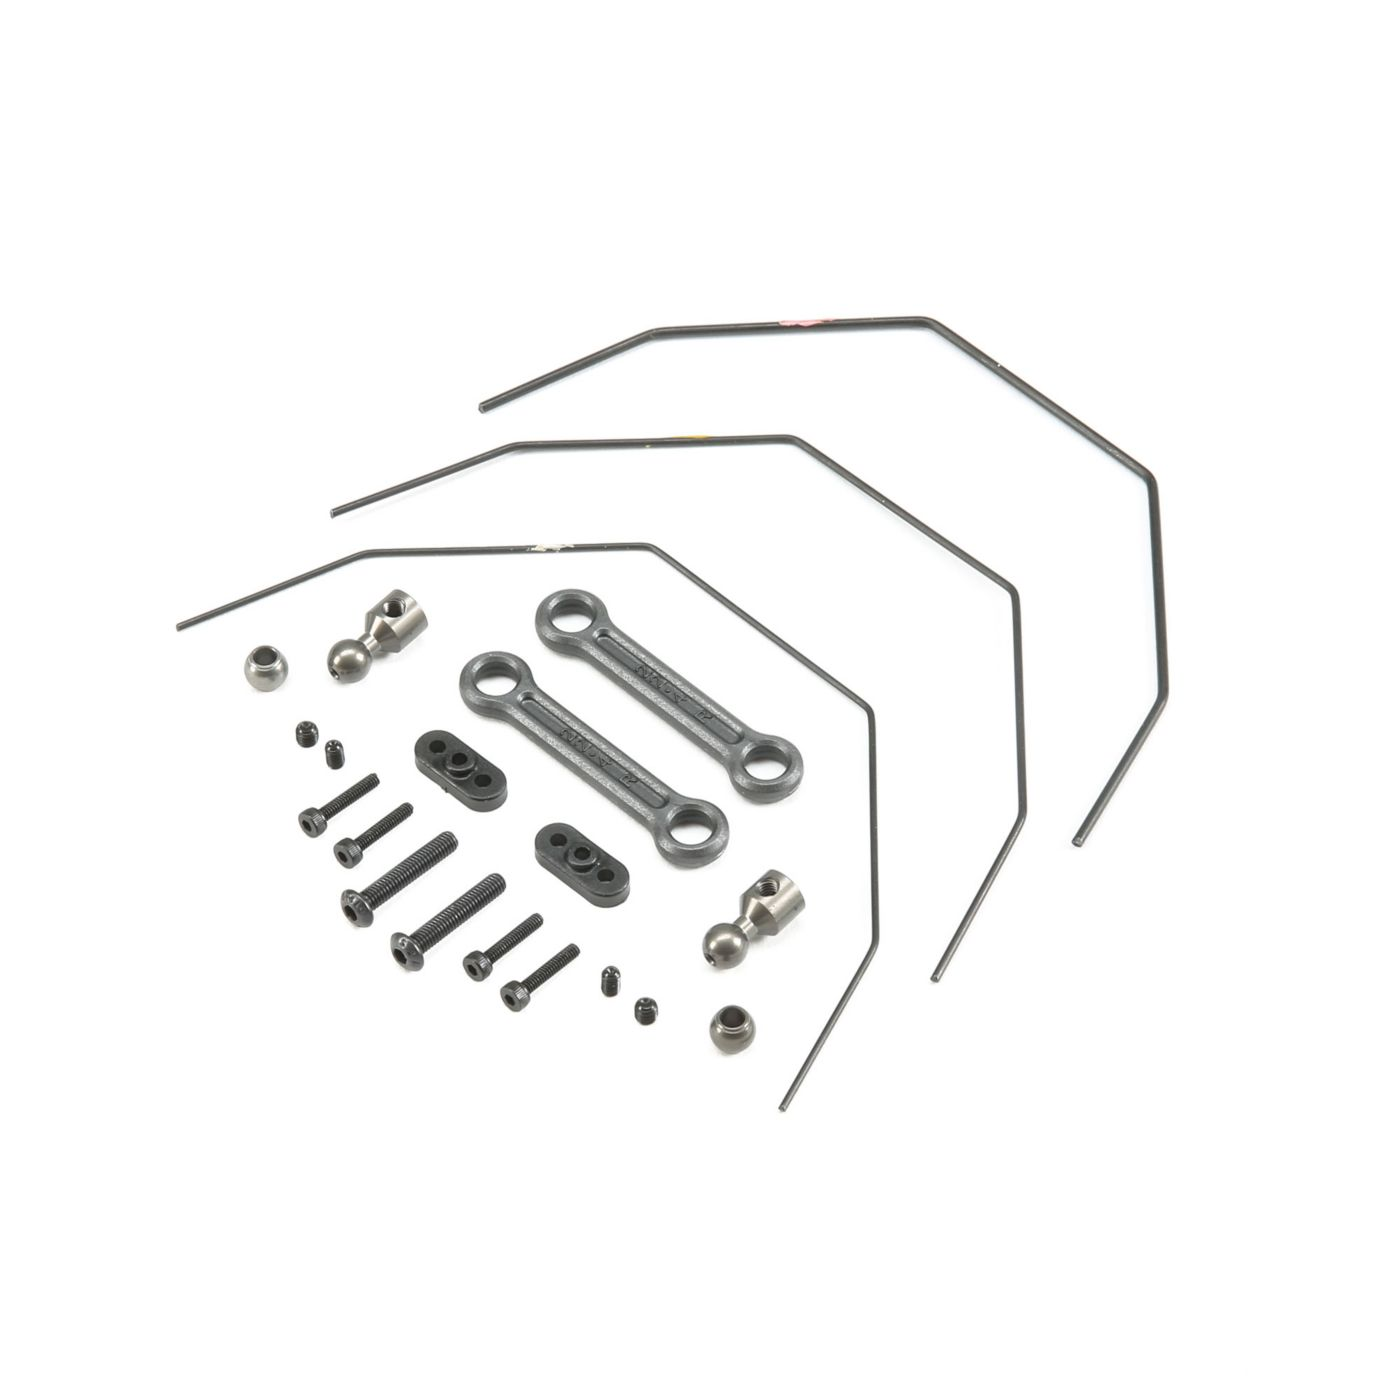 medium resolution of image for rear sway bar set 22sct 3 0 from horizonhobby